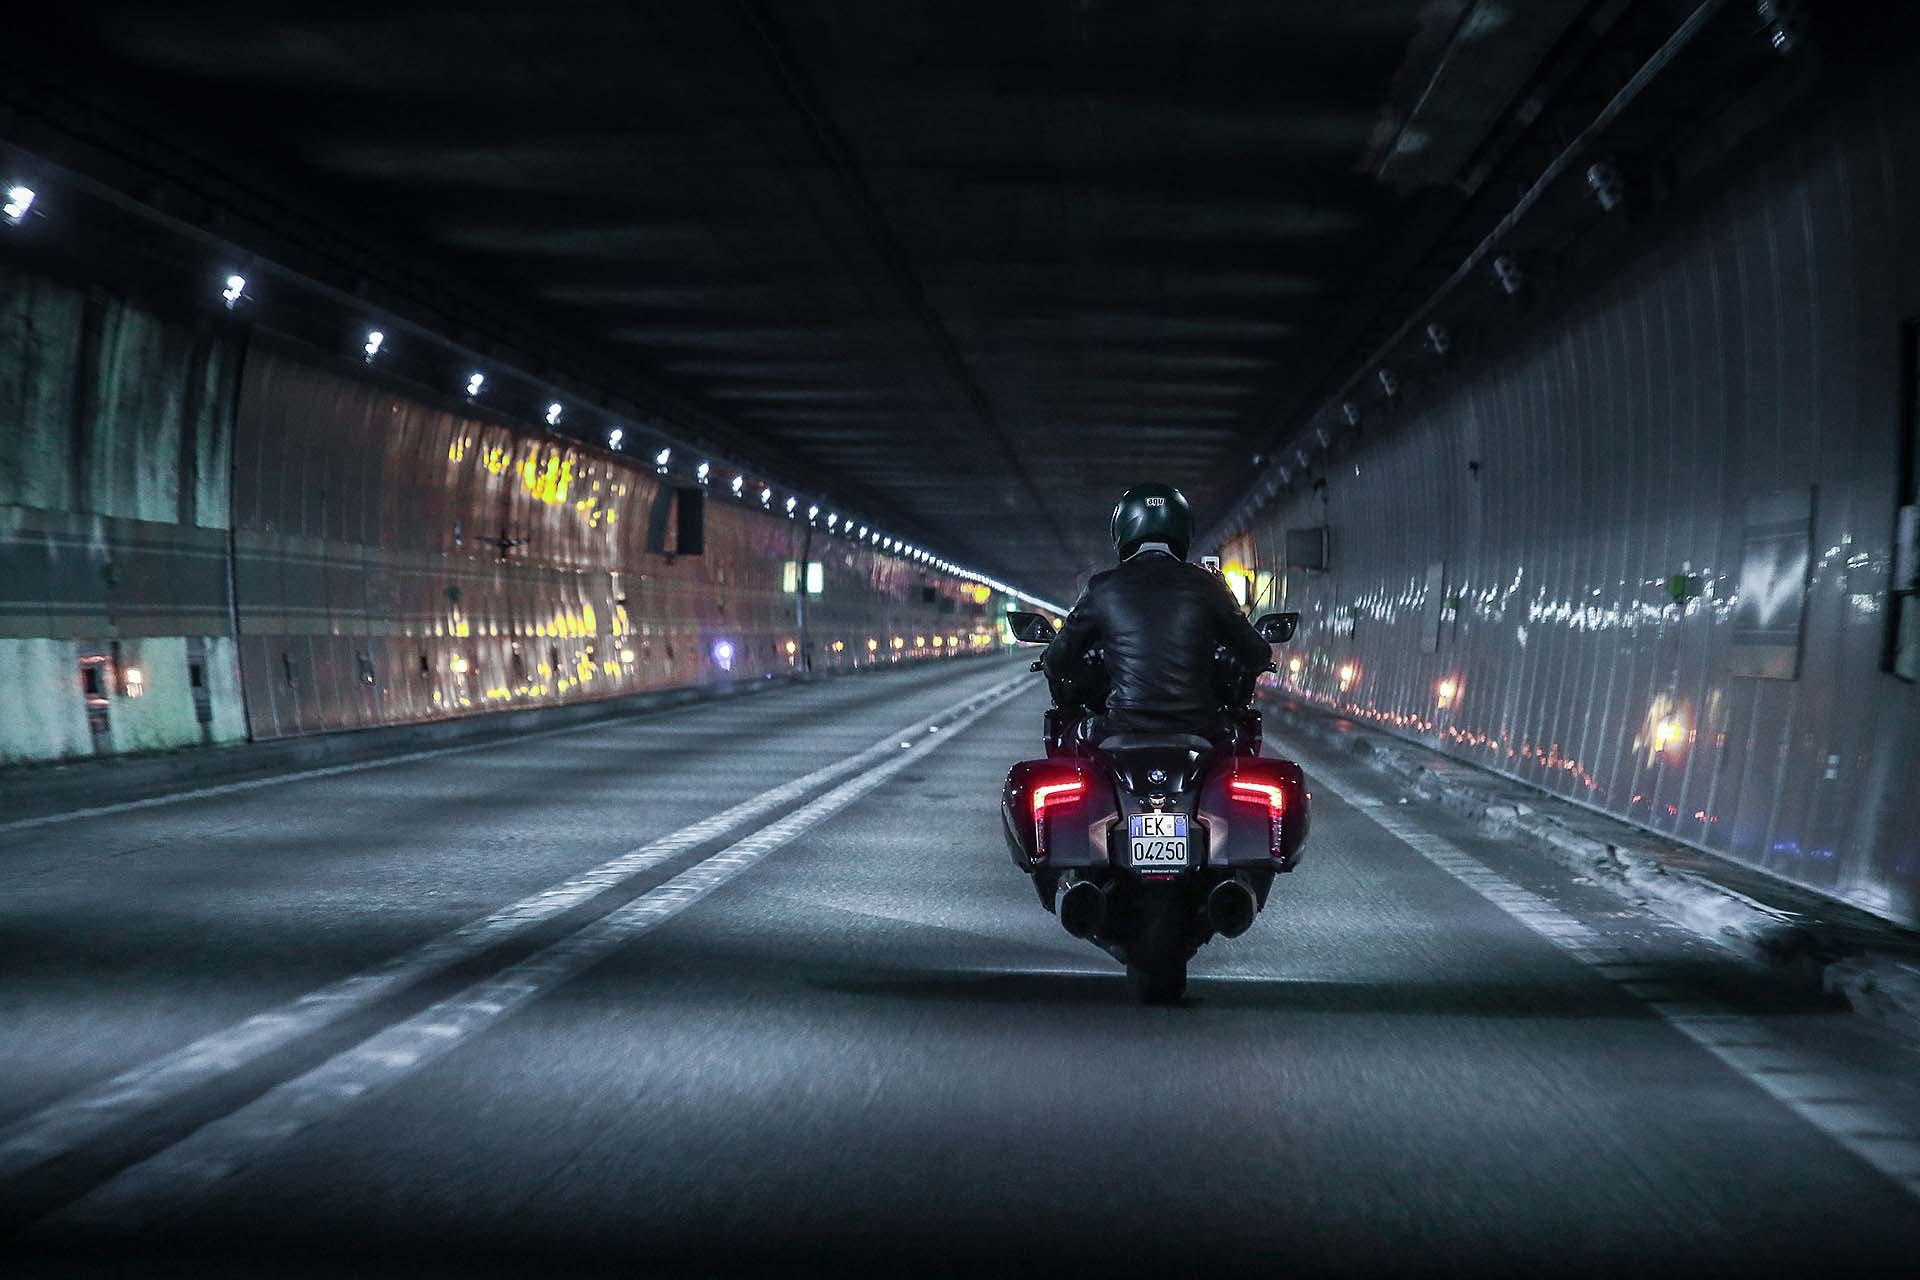 BMW K 1600 B tunnel